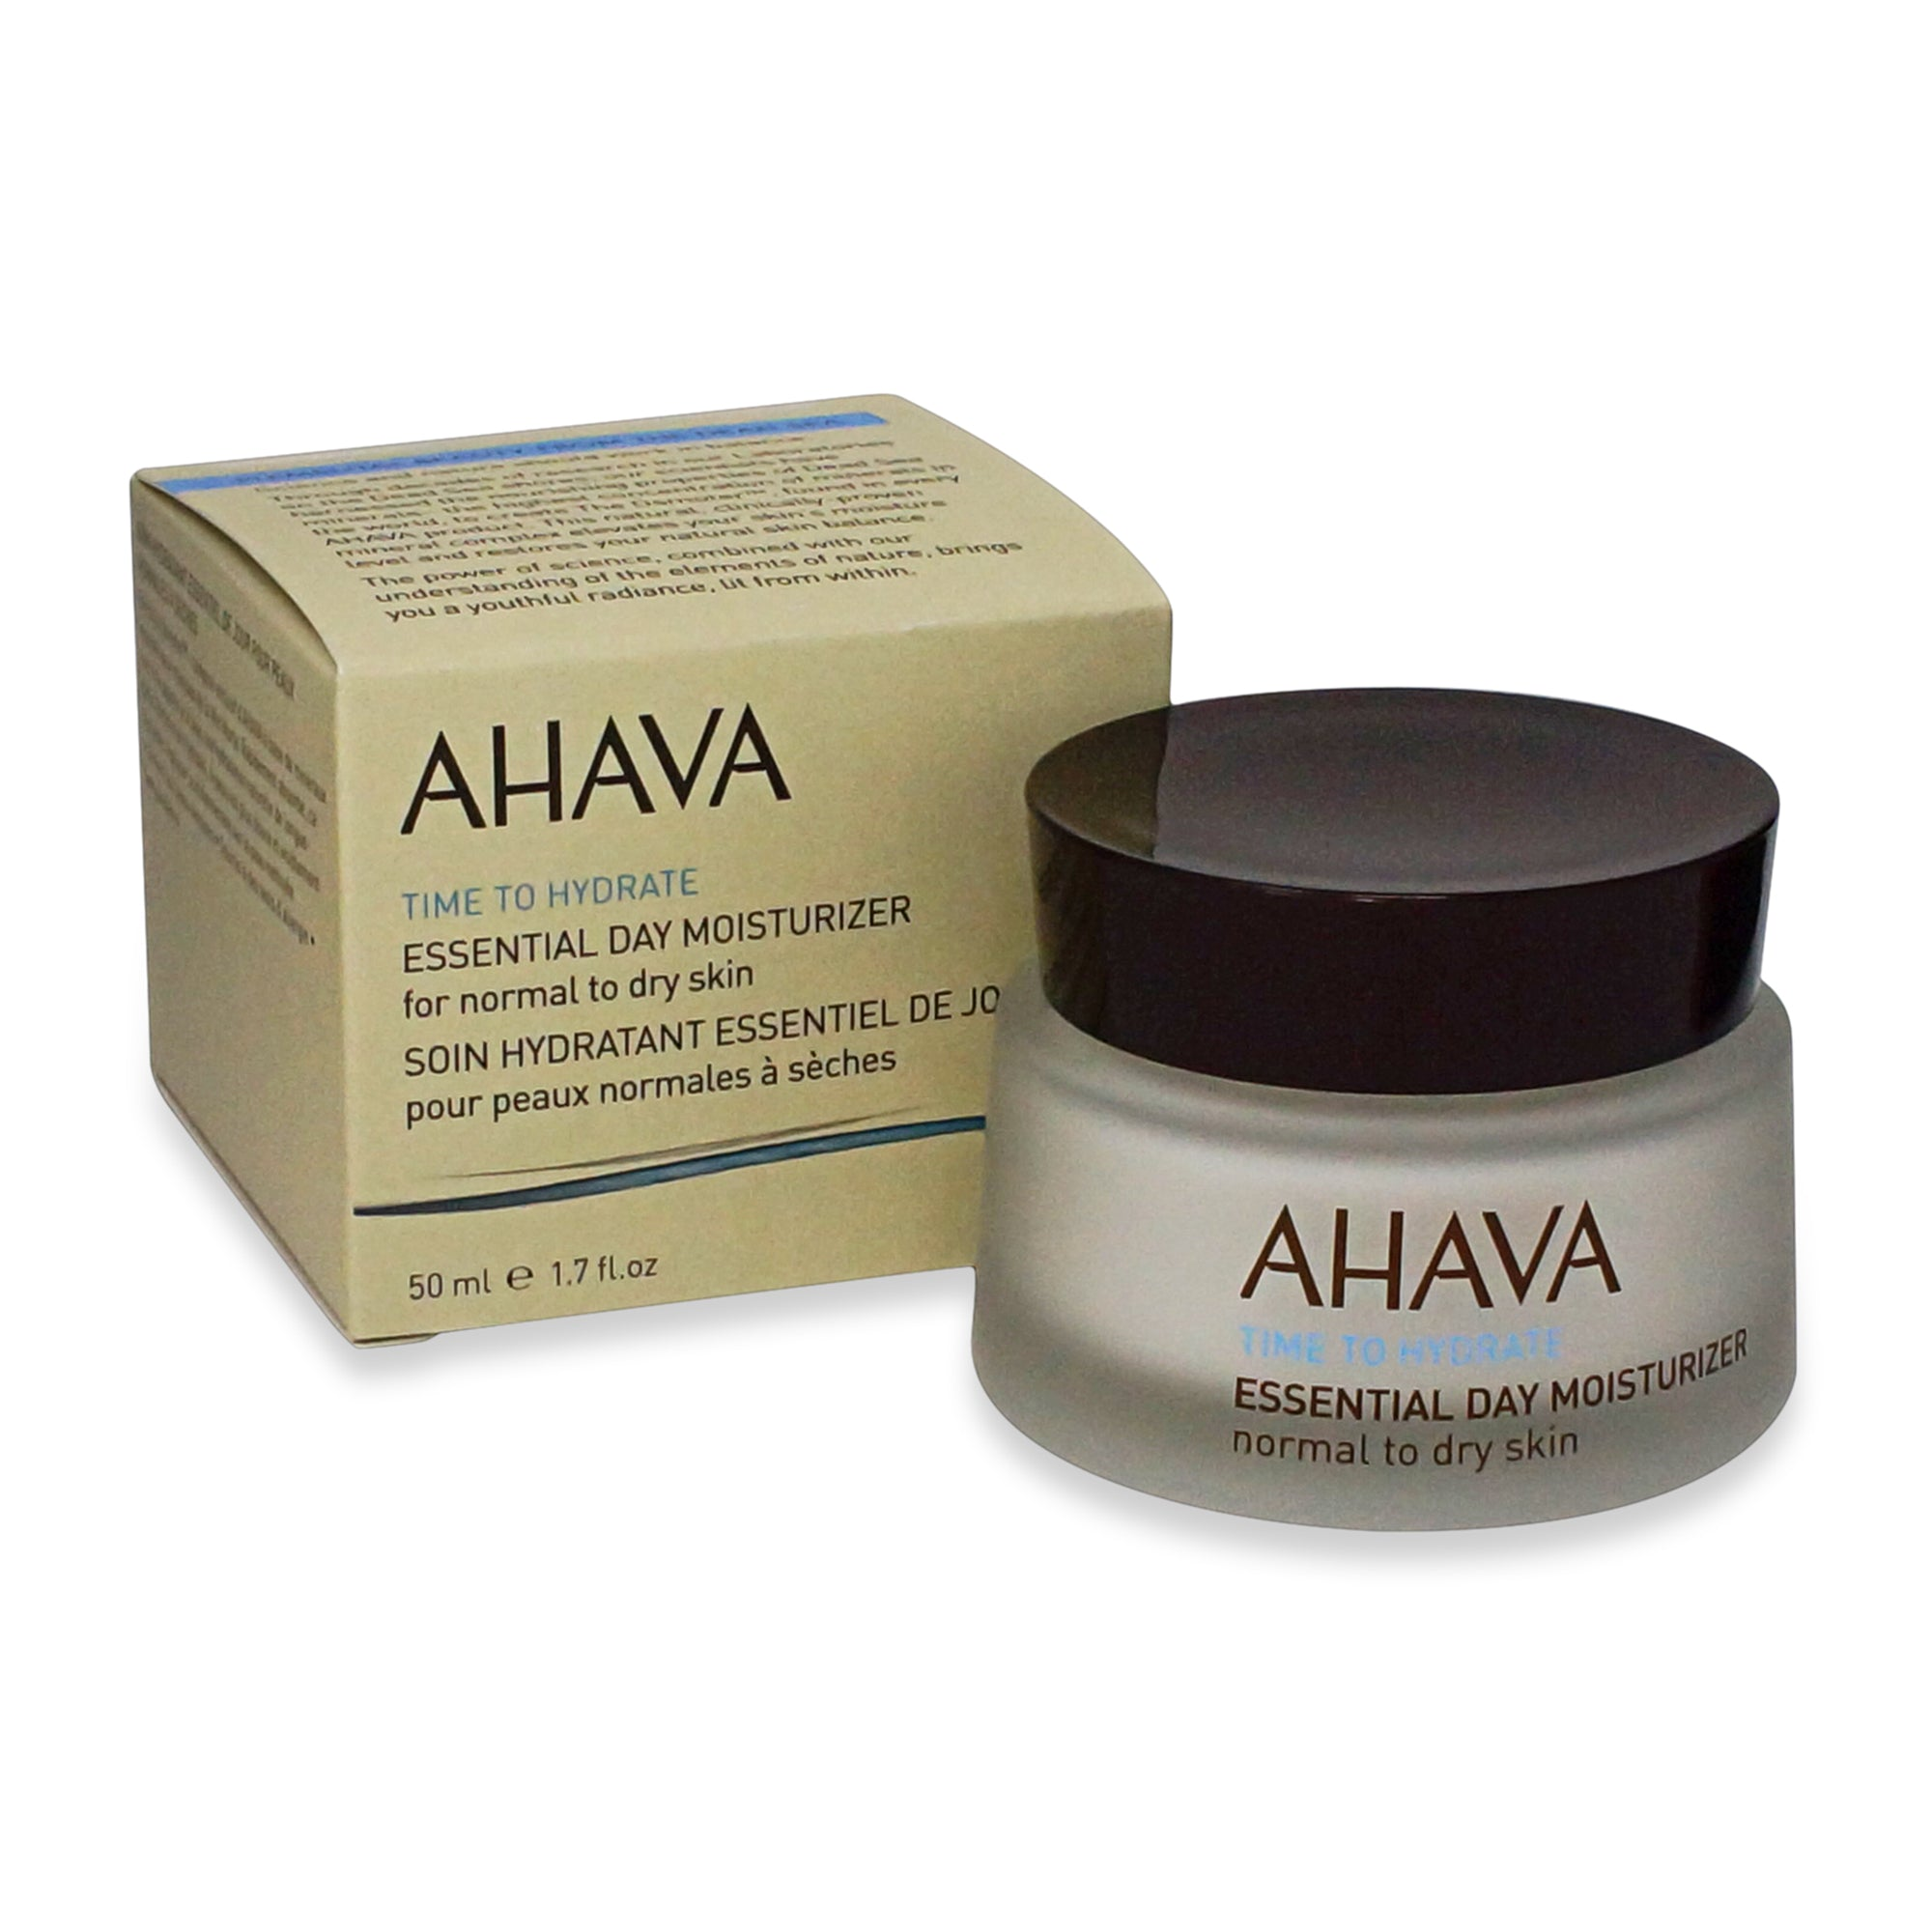 AHAVA ~ TIME TO HYDRATE ~ ESSENTIAL DAY MOISTURIZER FOR NORMAL TO DRY SKIN ~ 50ML